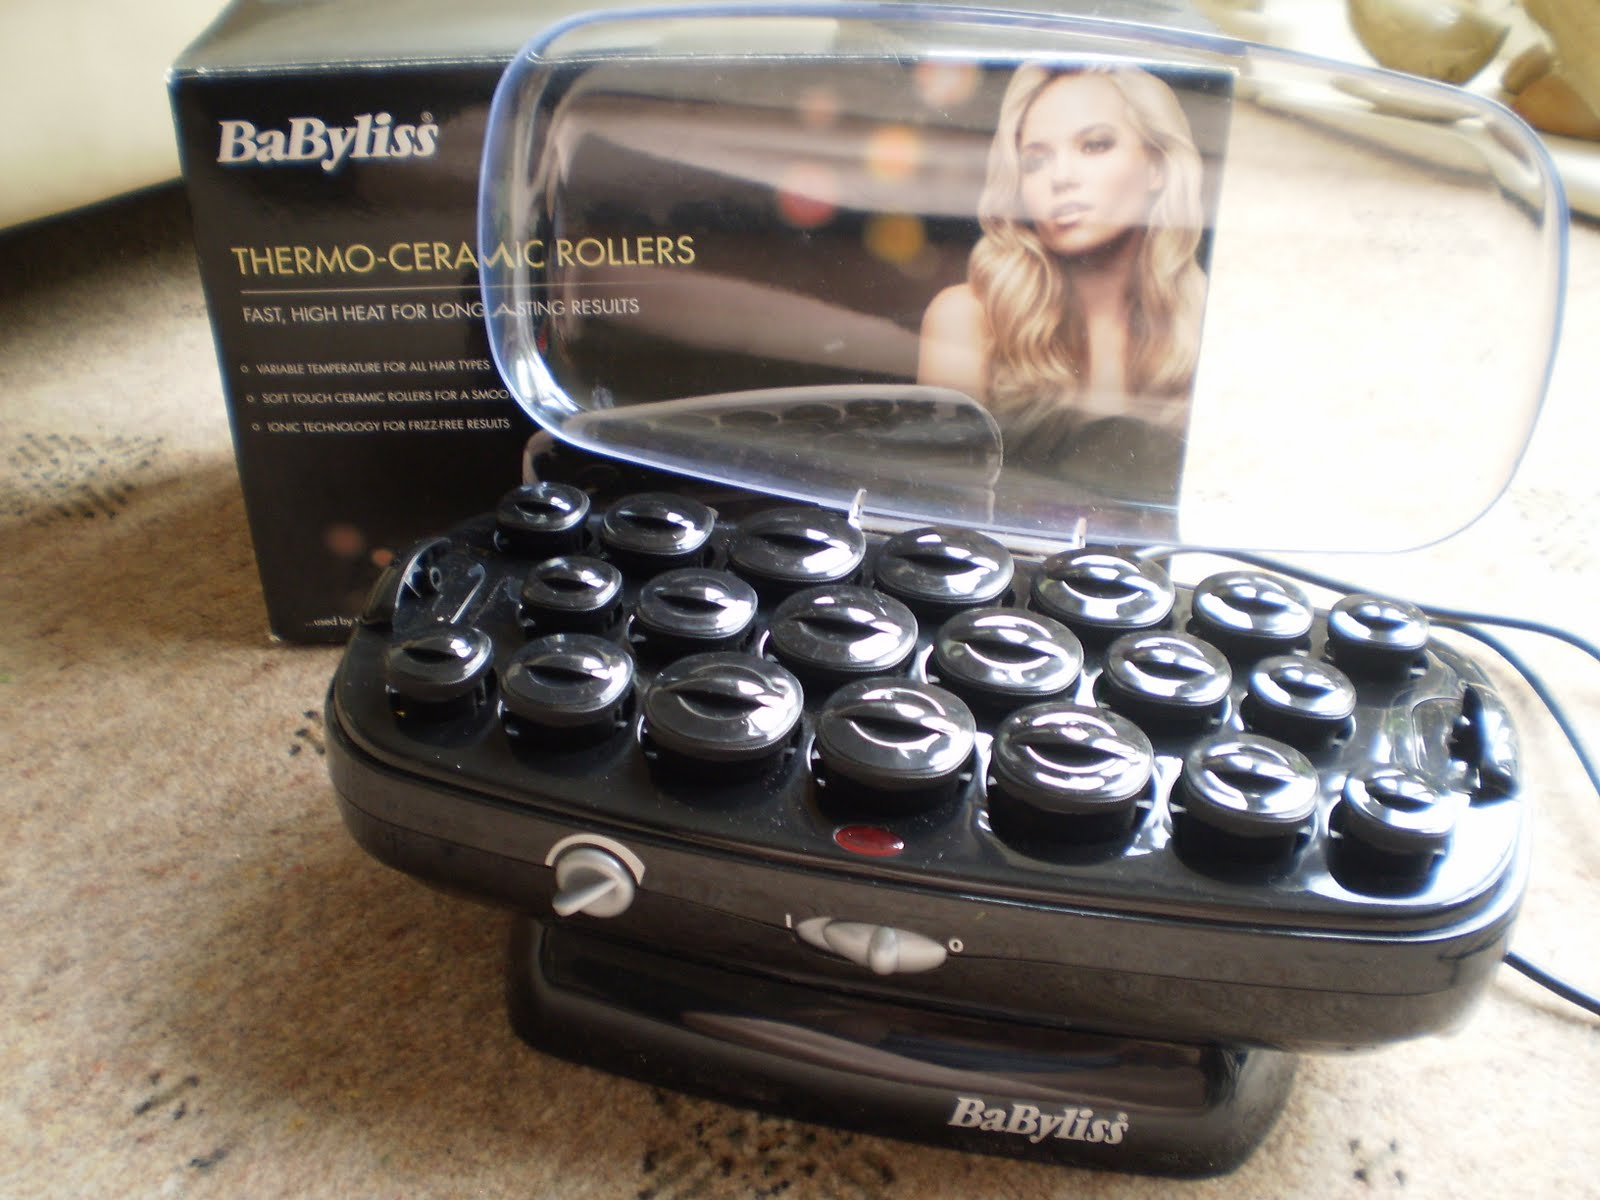 Just jen babyliss heated rollers - Rulos termicos babyliss ...